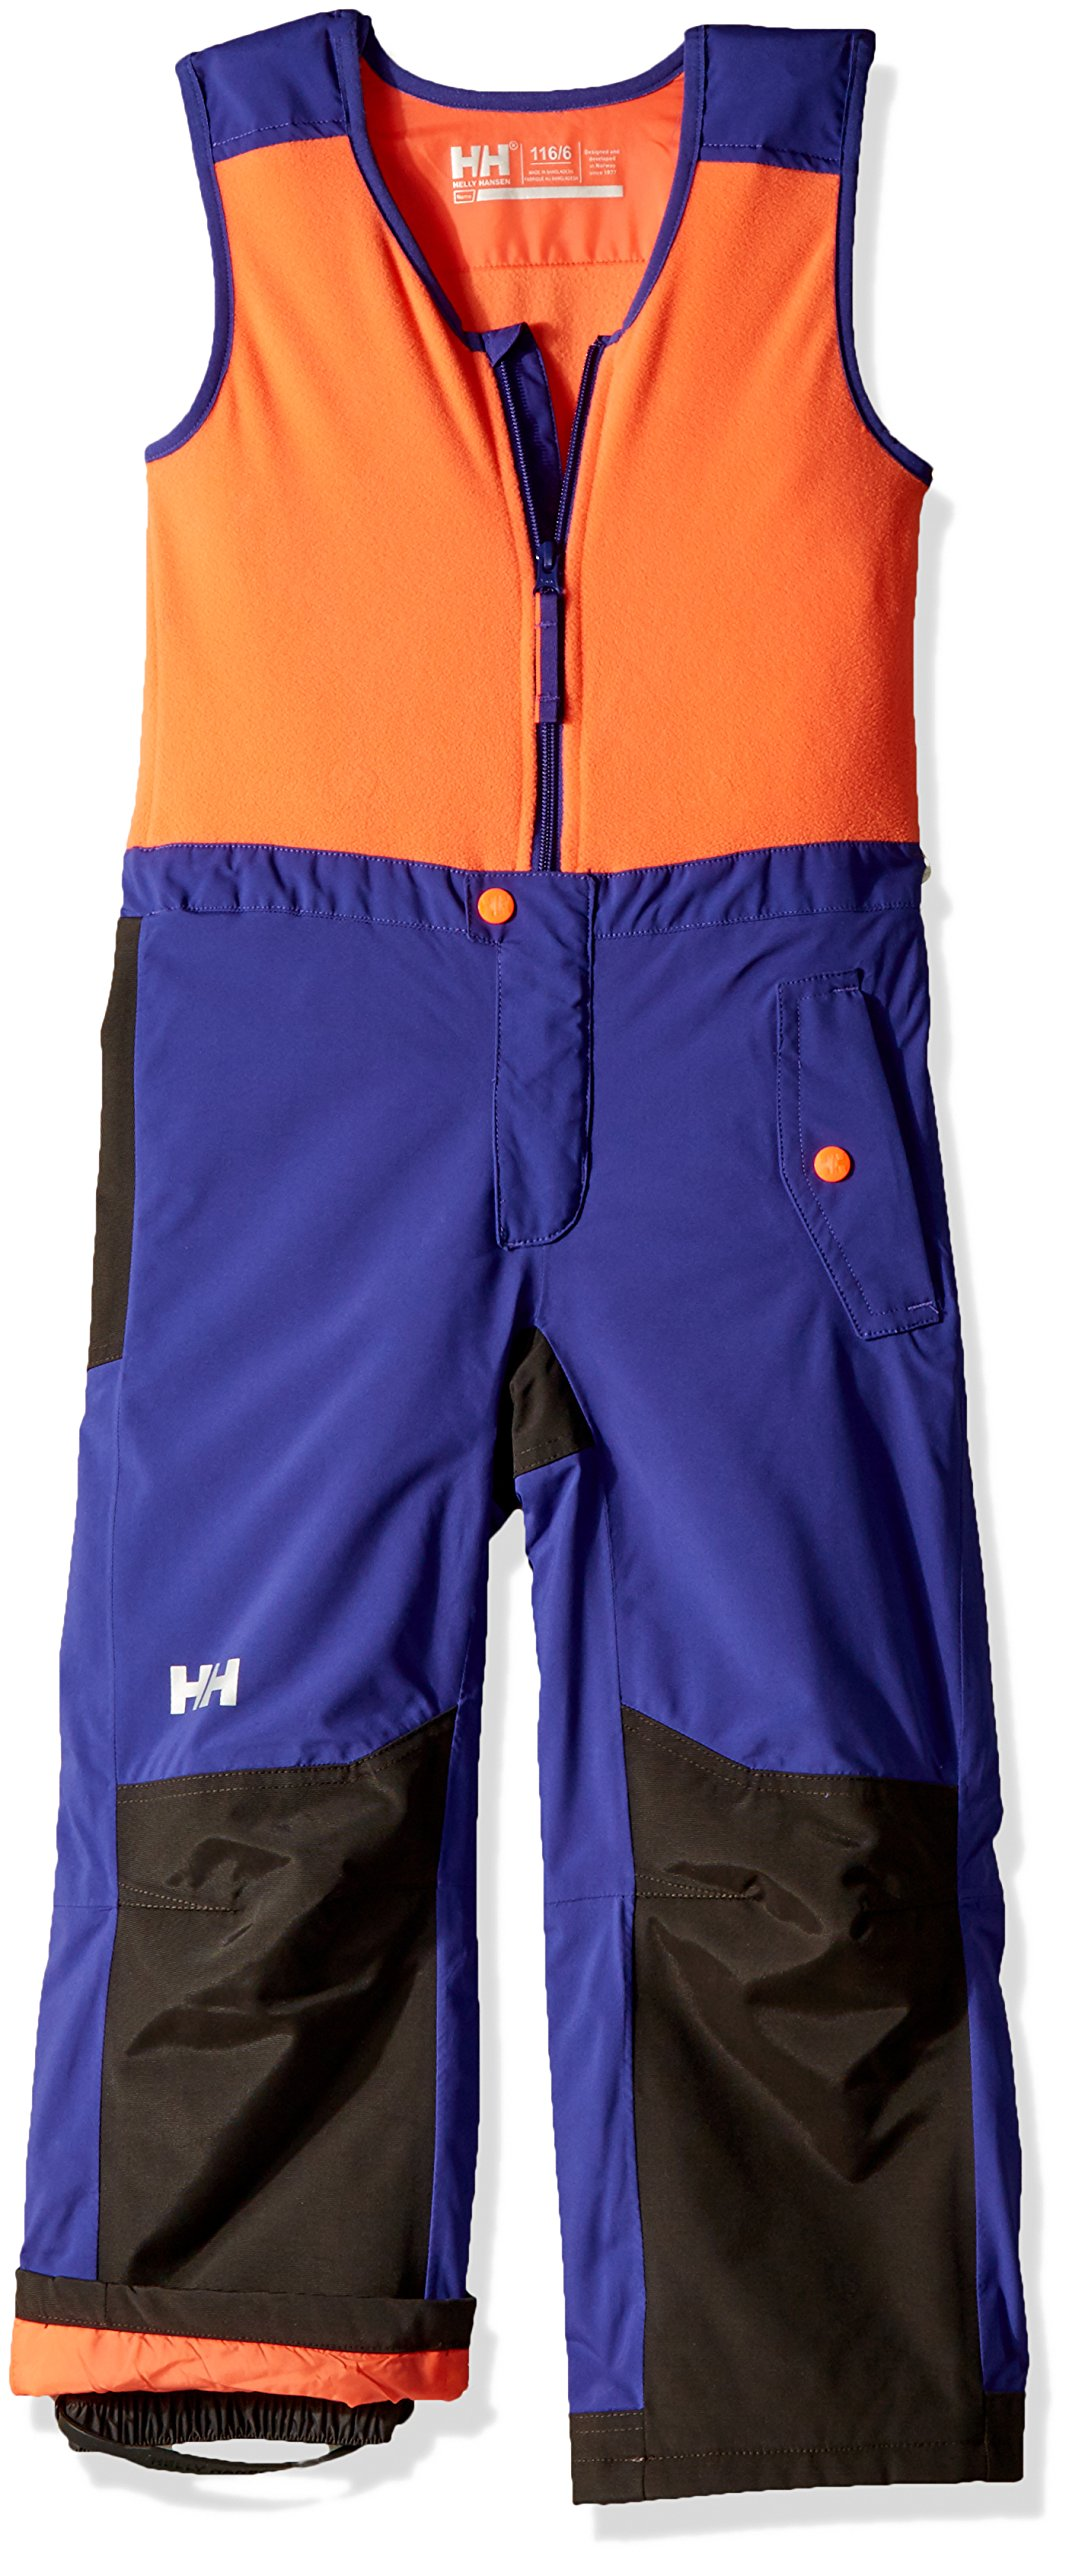 Helly Hansen Kid's Powder Bib Pants, Lavender, Size 7 by Helly Hansen